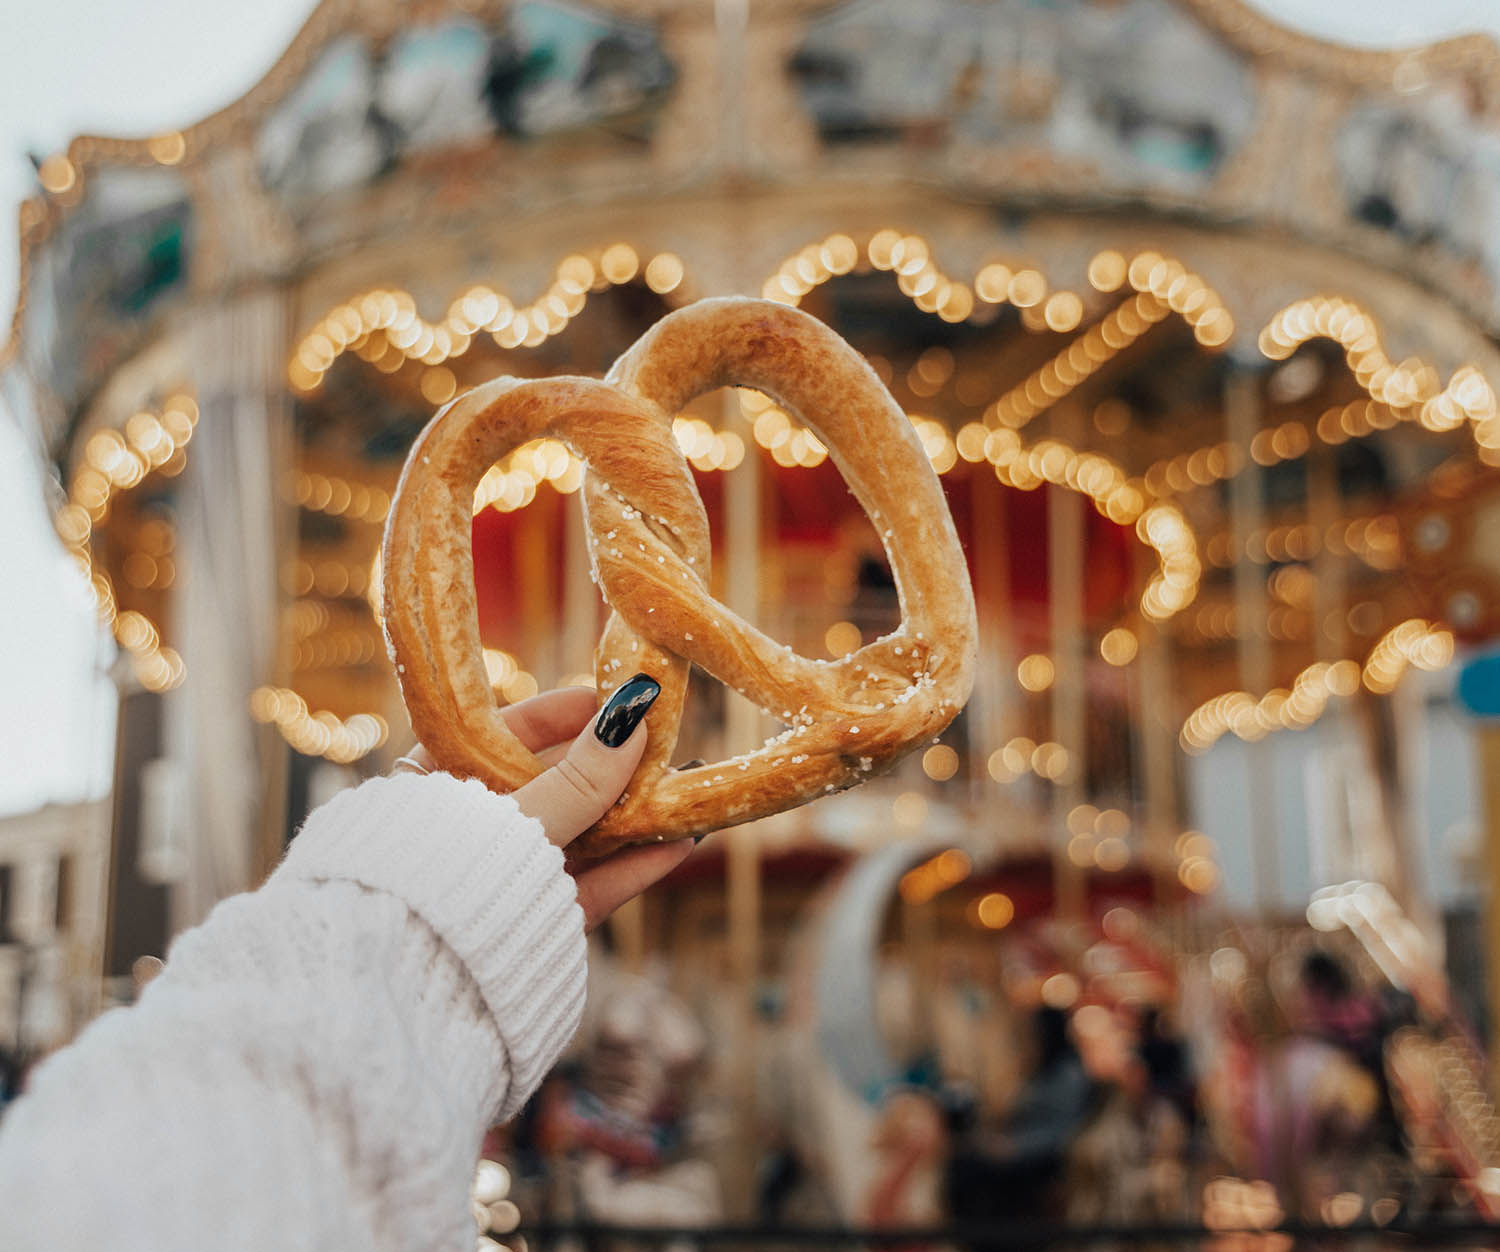 Instagram-Worthy Spots in San Francisco: Pretzels by Pier 39